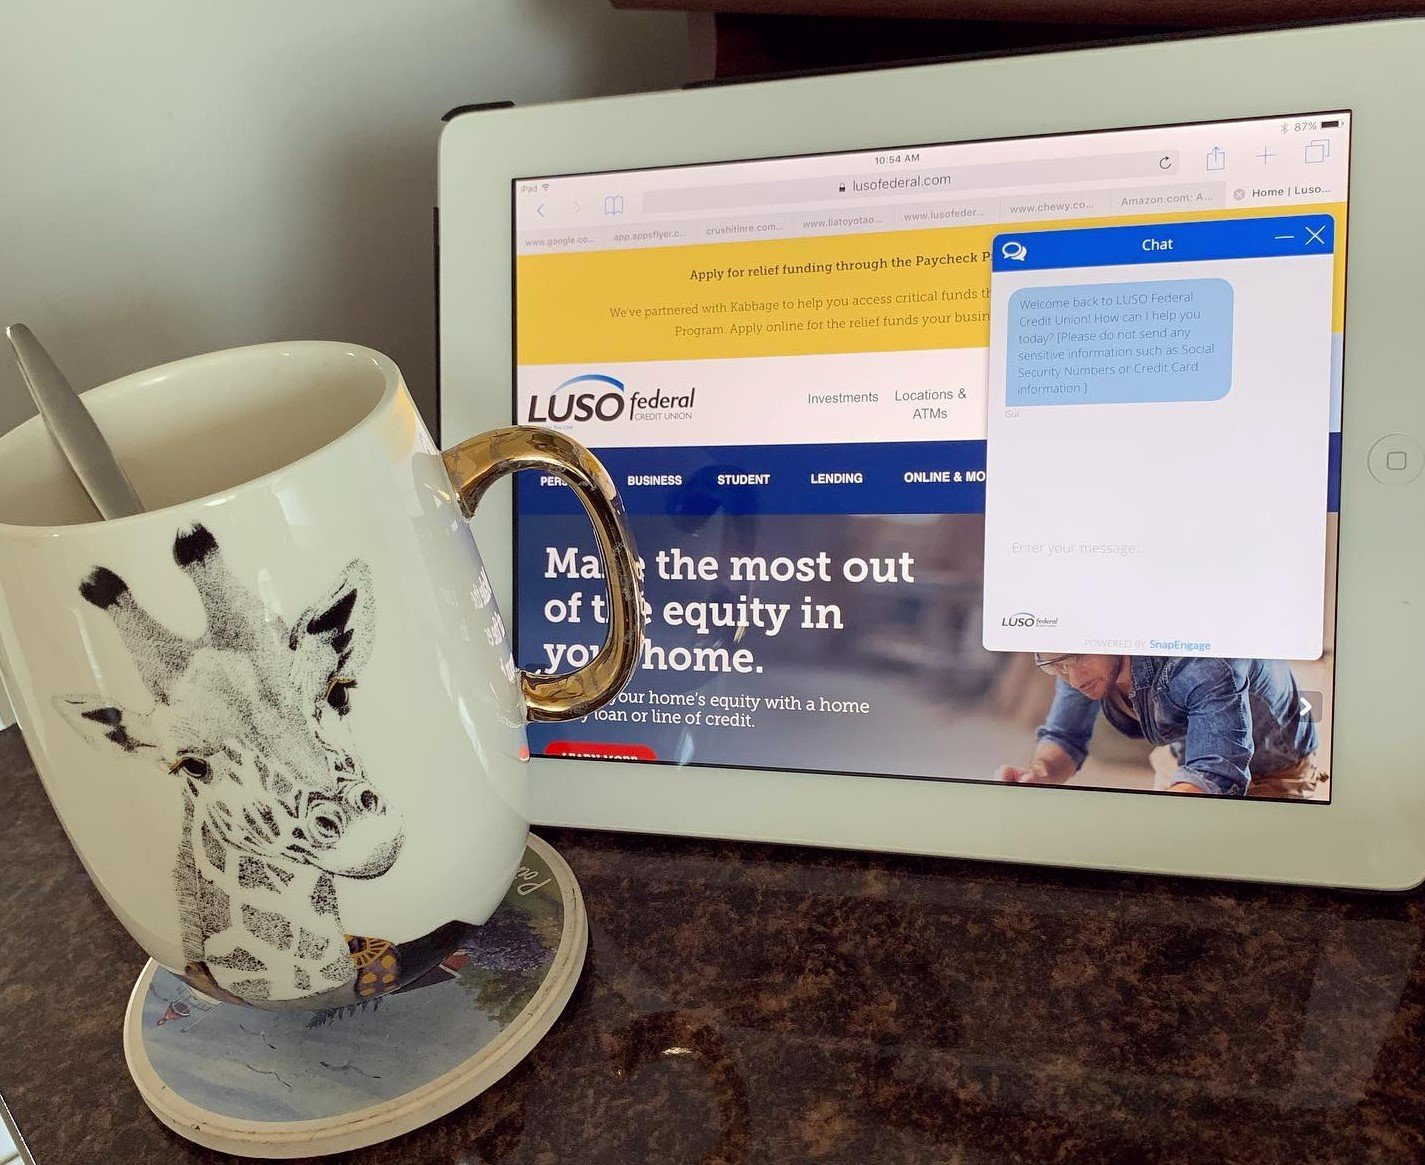 Coffee Cup next to ipad displaying luso website with Live Chat popup